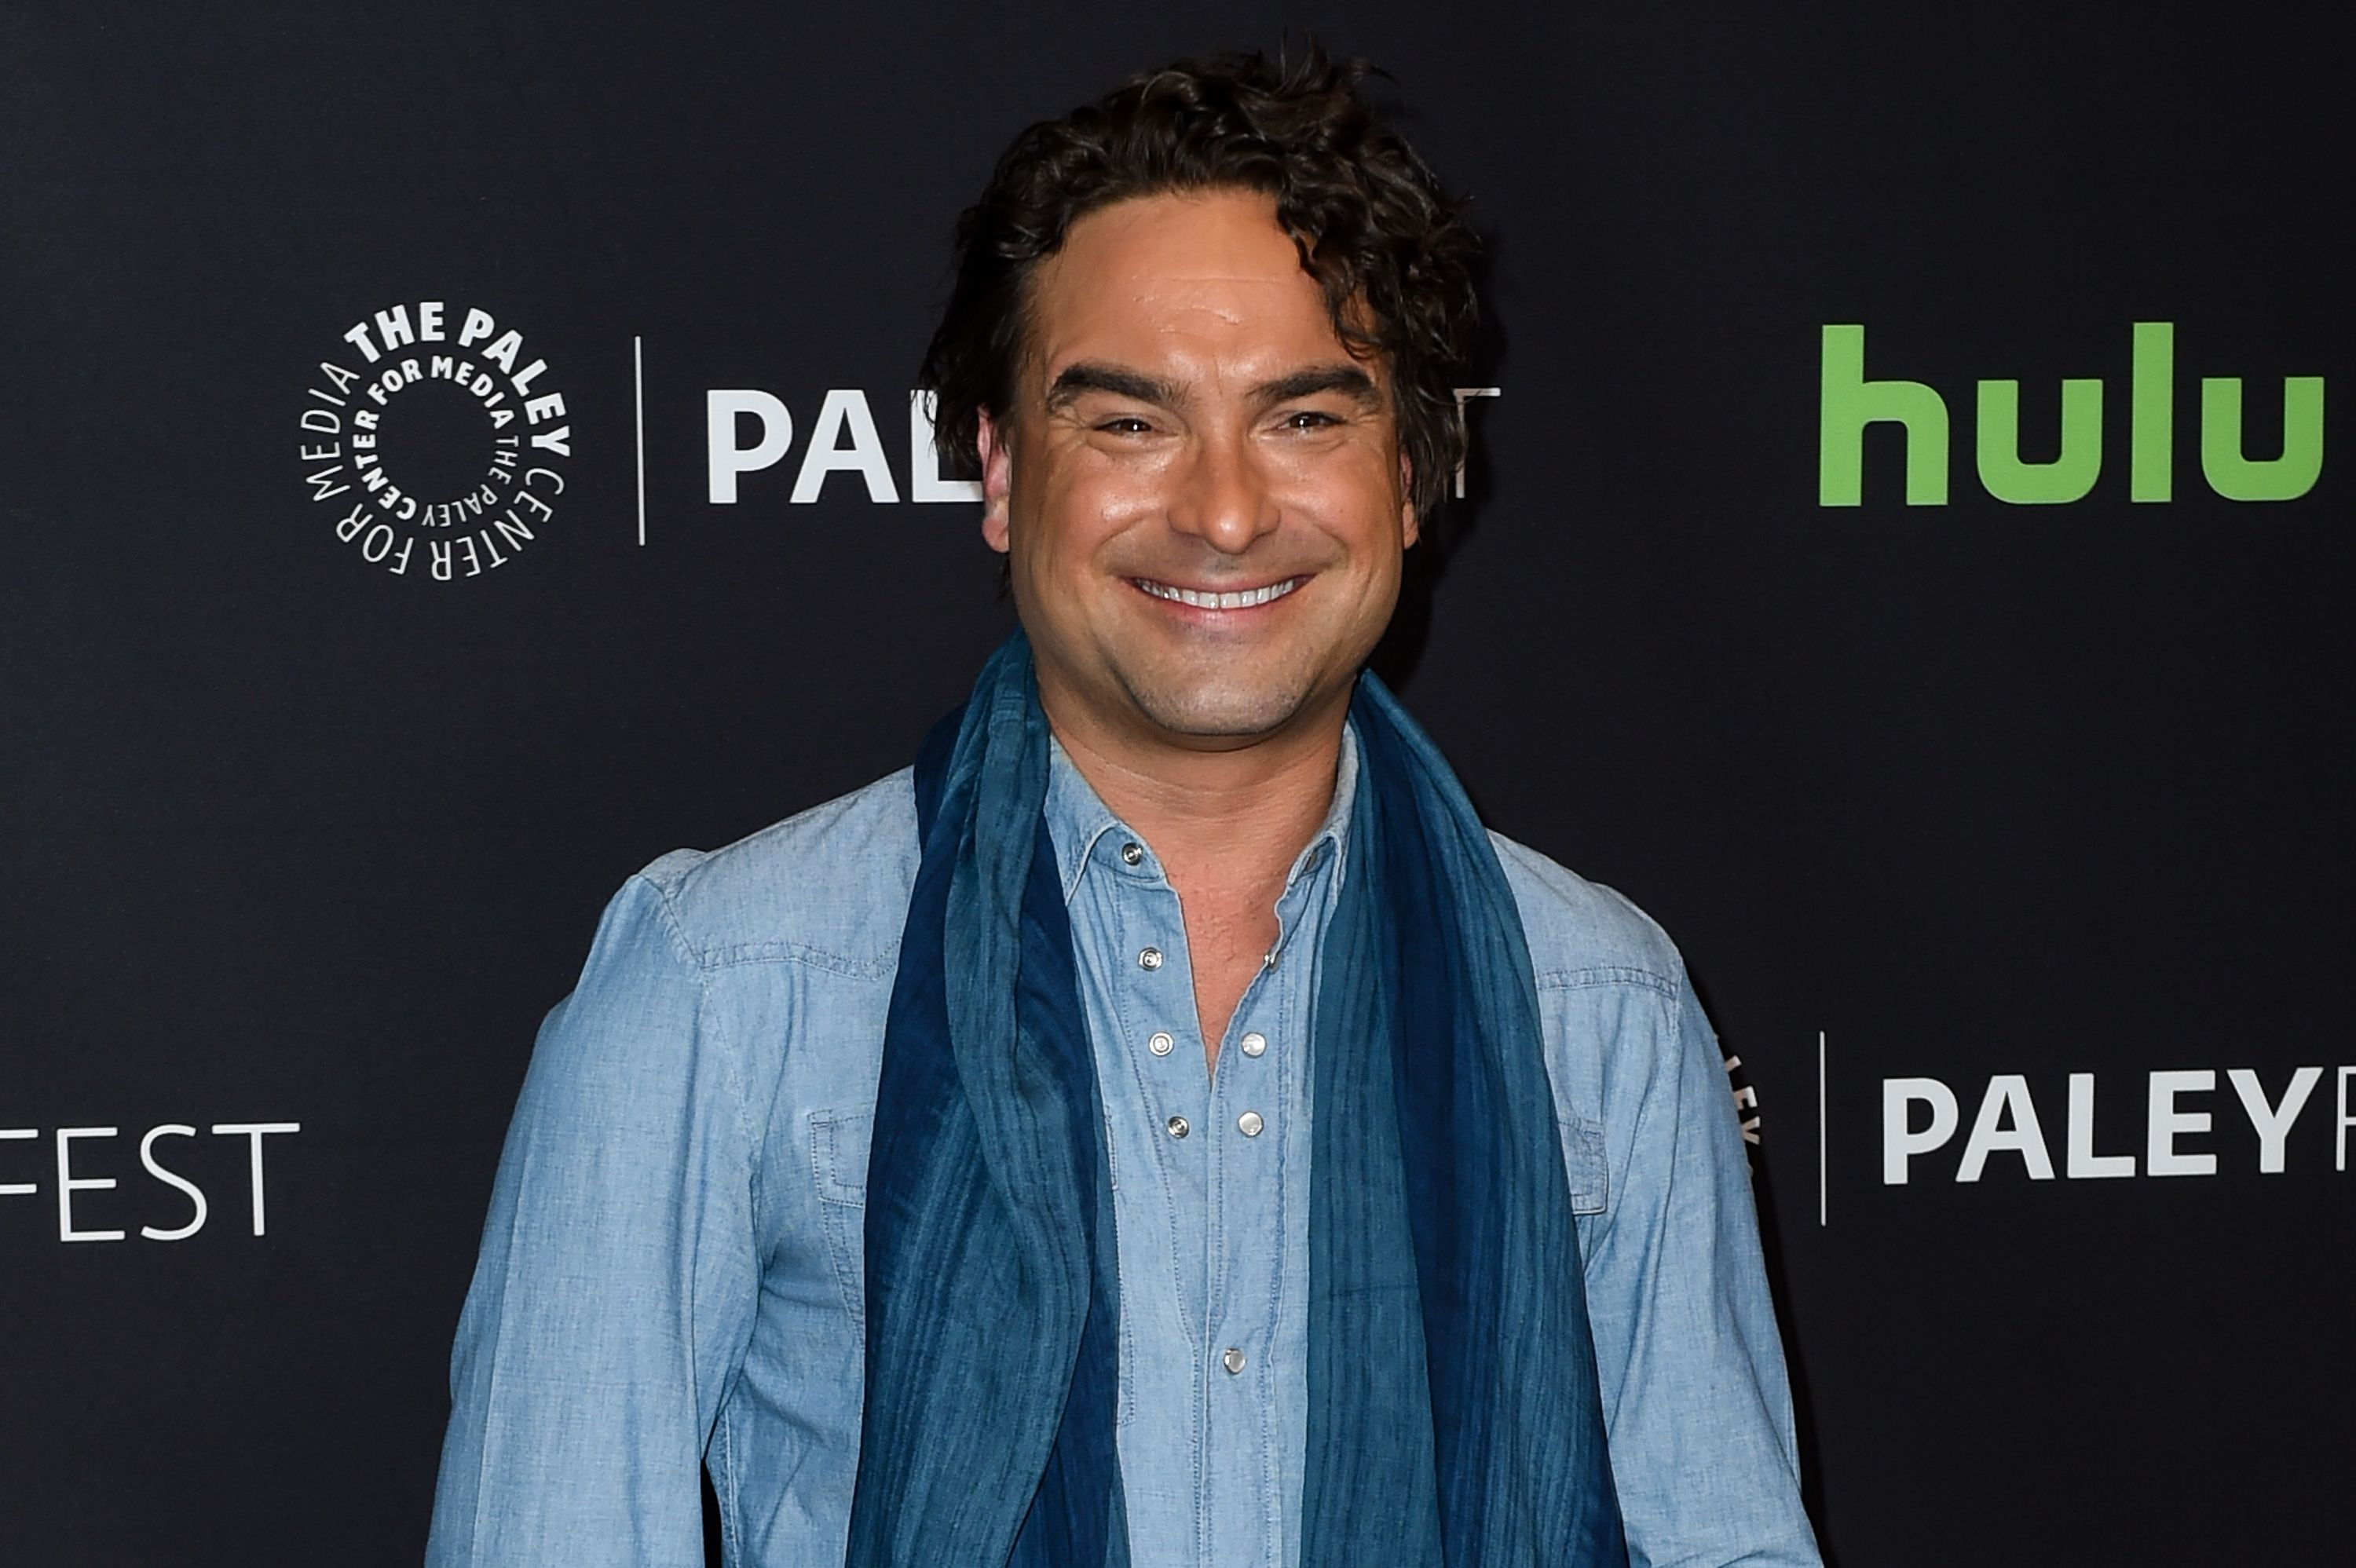 Johnny Galecki lines up Big Bang Theory reunion on next TV project